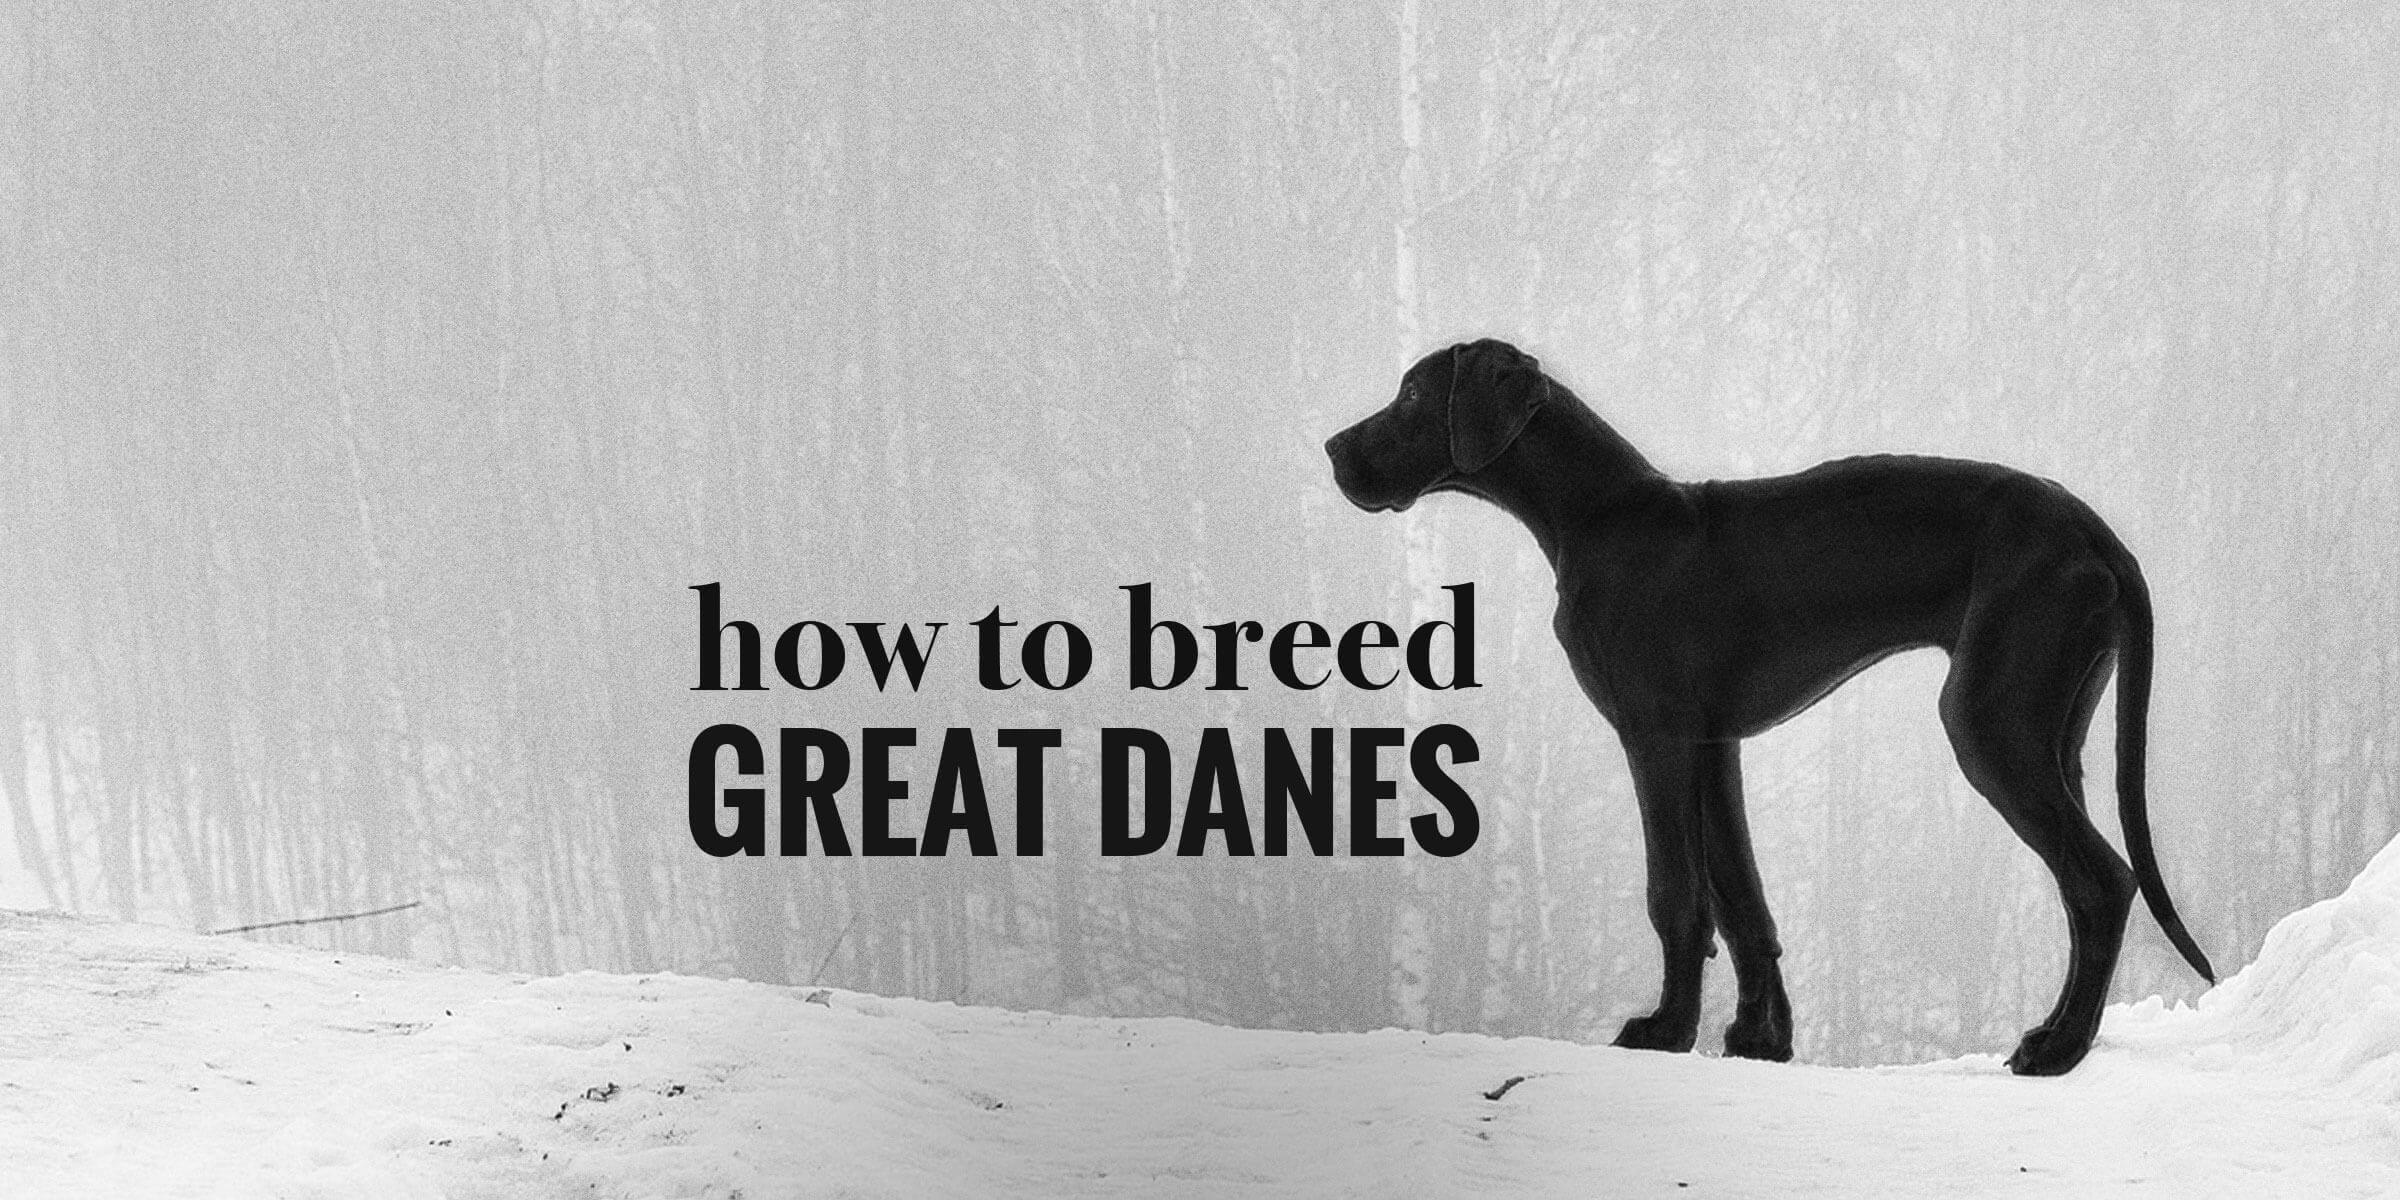 How To Breed Great Danes